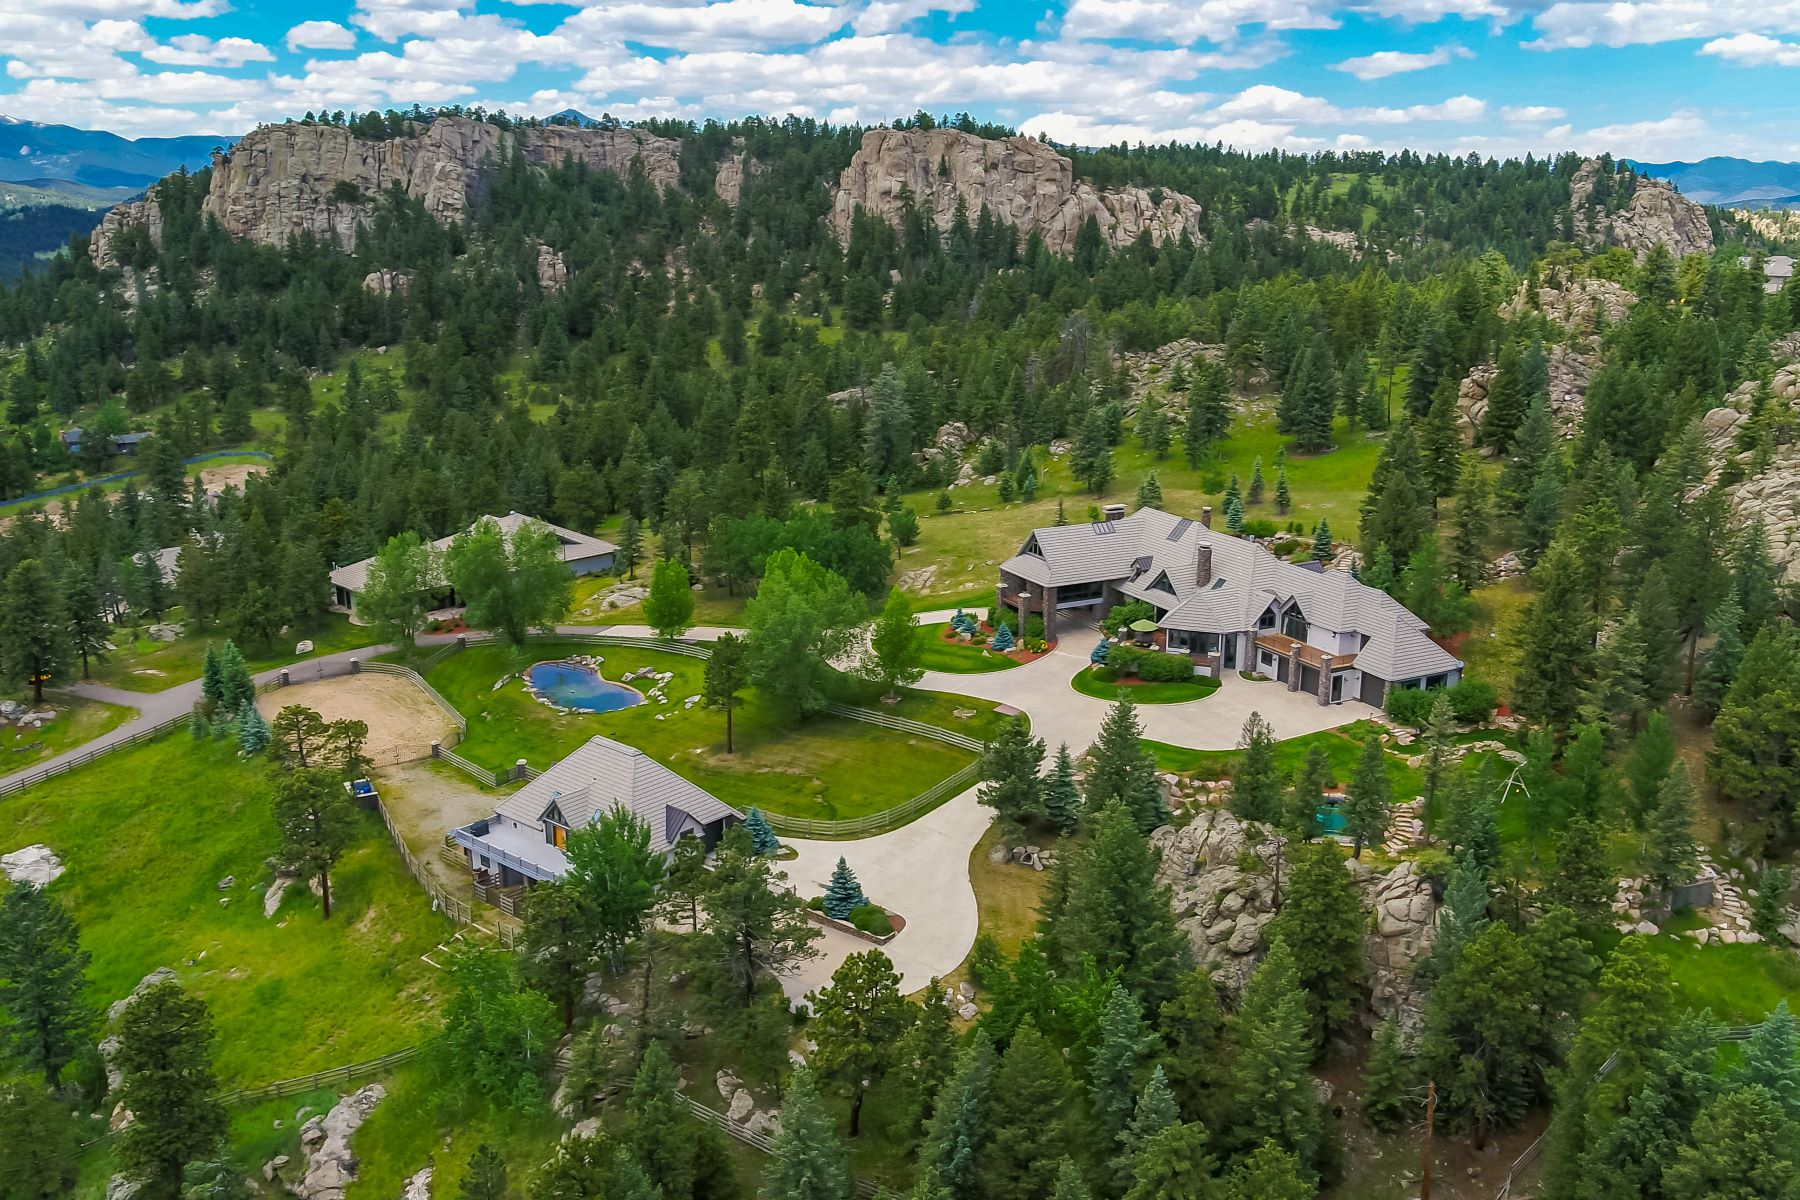 Single Family Homes for Active at This Luxurious Estate is More of a Lifestyle Choice, 6917 Timbers Drive Evergreen, Colorado 80439 United States